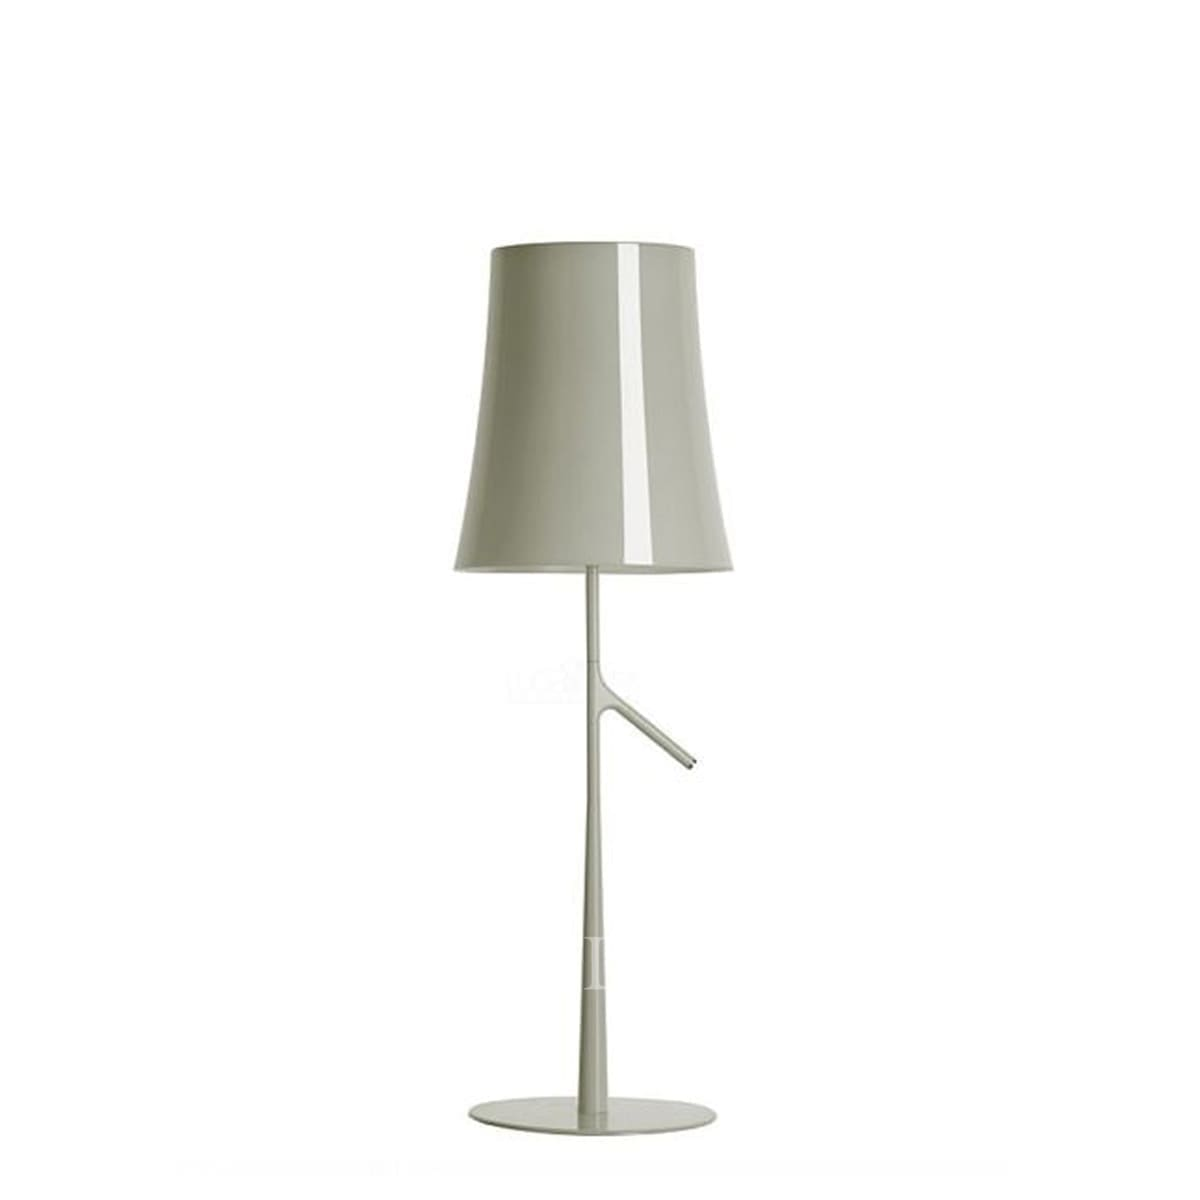 foscarini italian lighting designer table lamp birdie grey